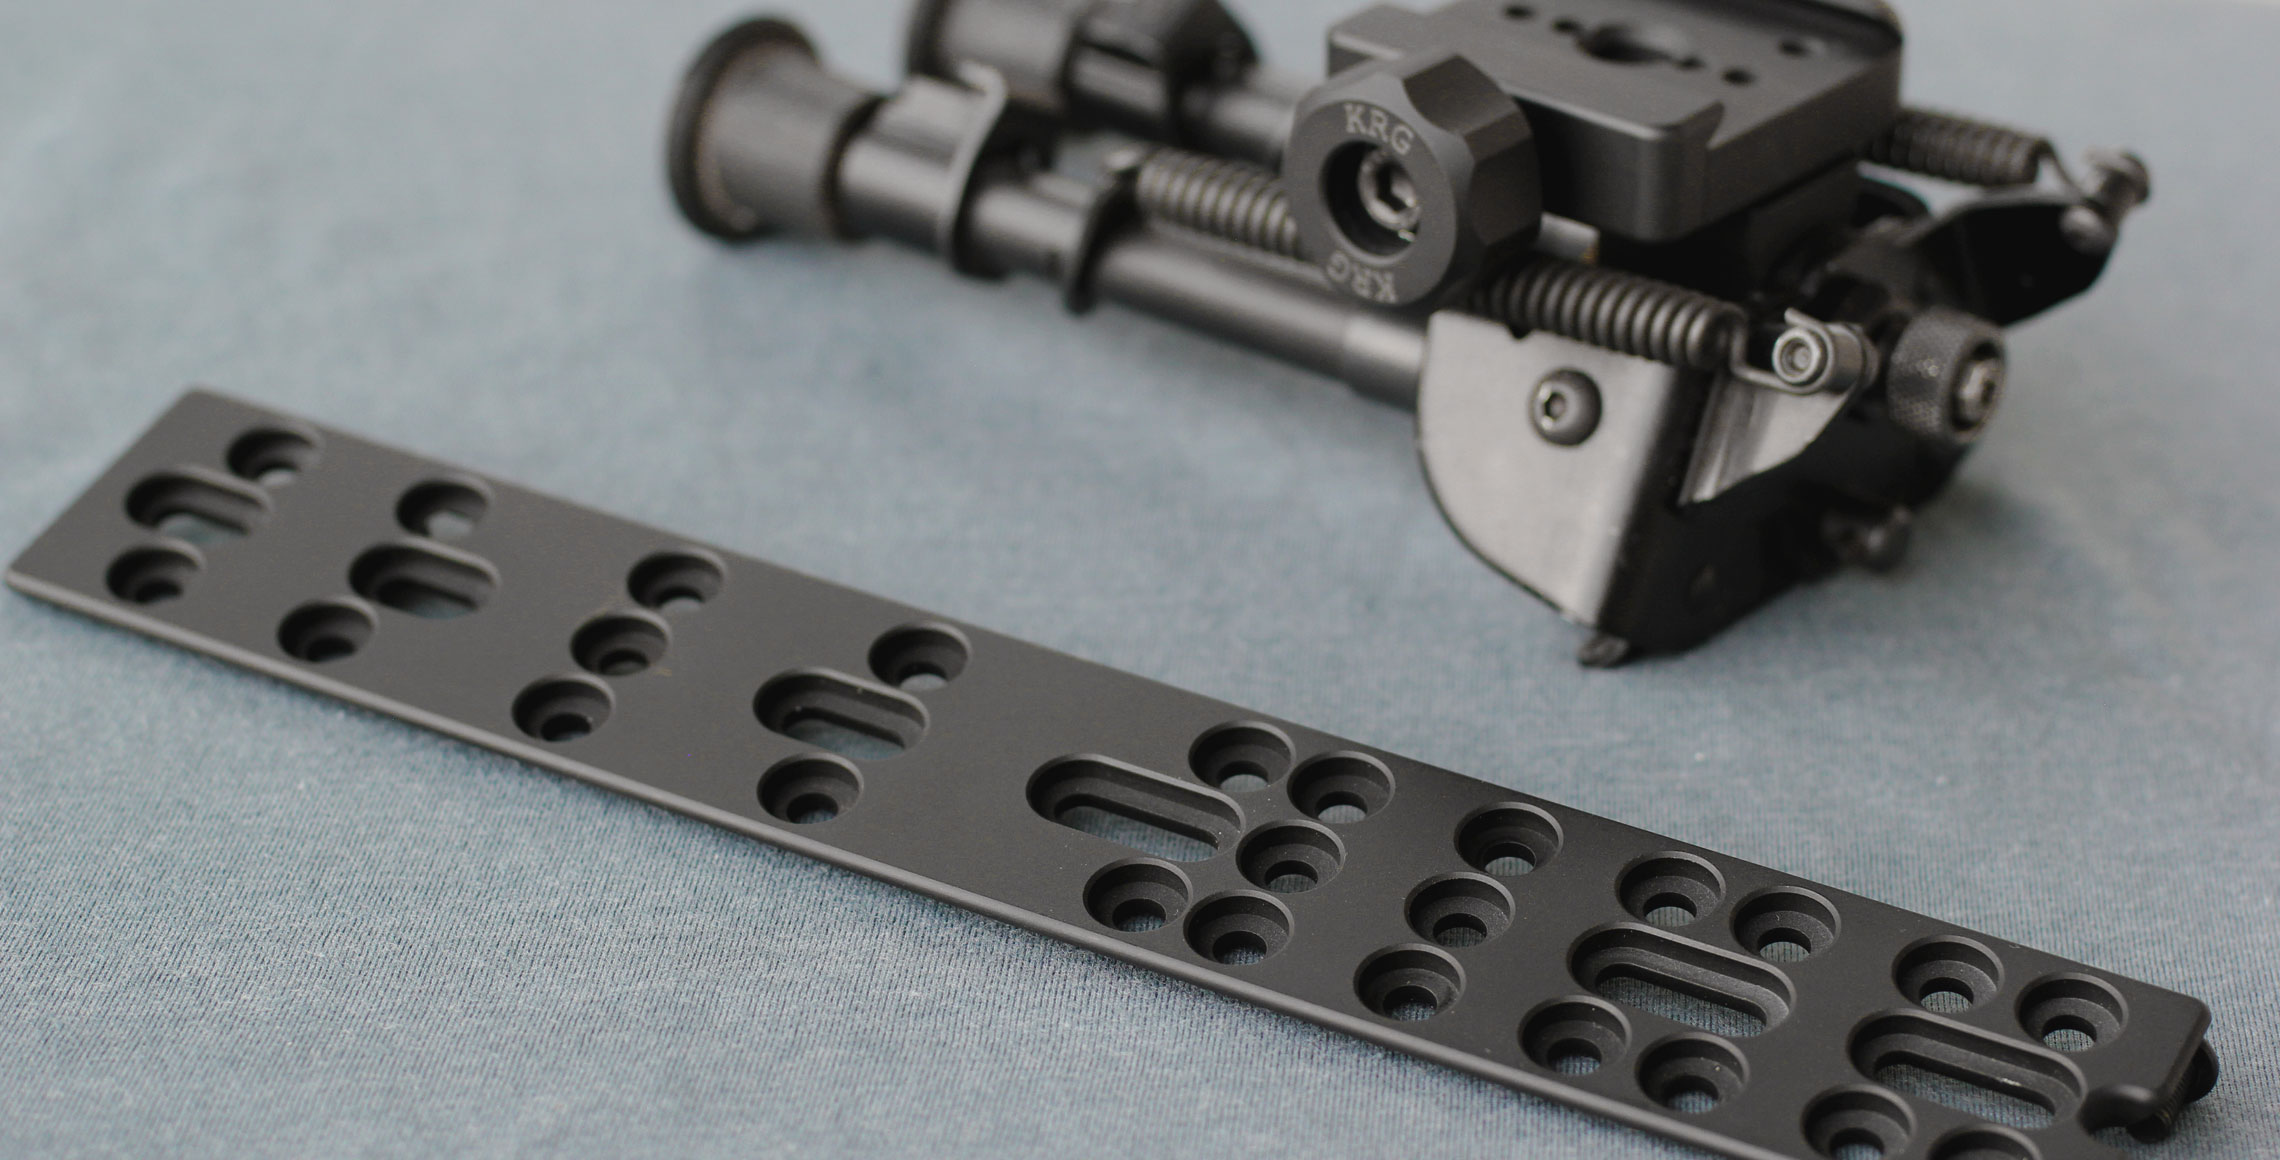 KRG Arca Rail and Arca Clamp — Another QD Mounting Interface?